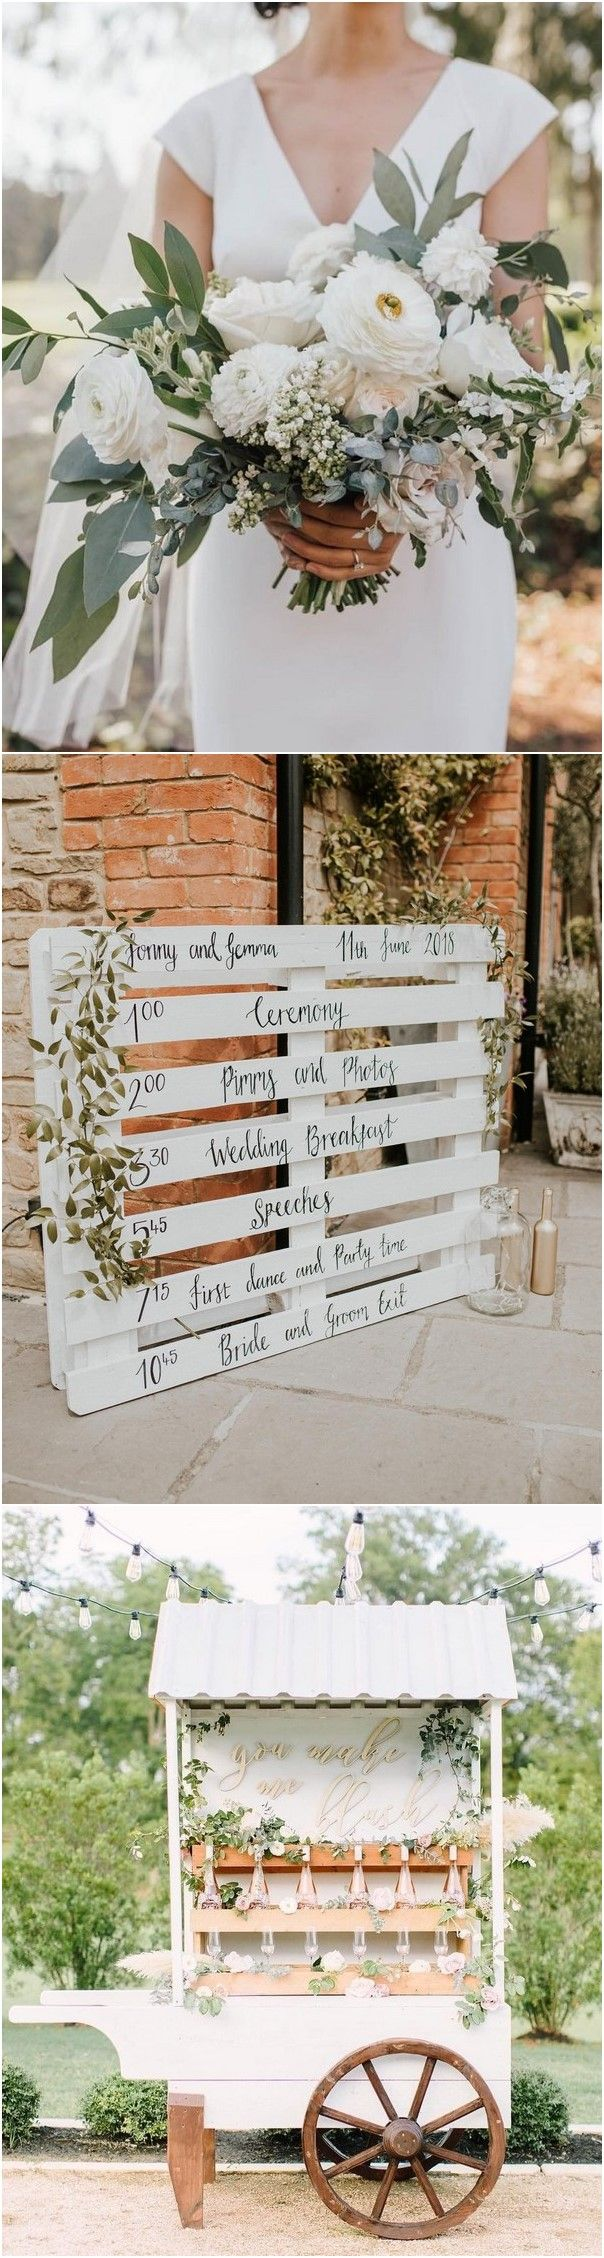 Rustic Greenery Wedding Color And Decor Ideas Weddings Greenwedding Weddingideas Wedding Deerpearlflowers Wedding Colors Diy Wedding Diy Wedding Flowers